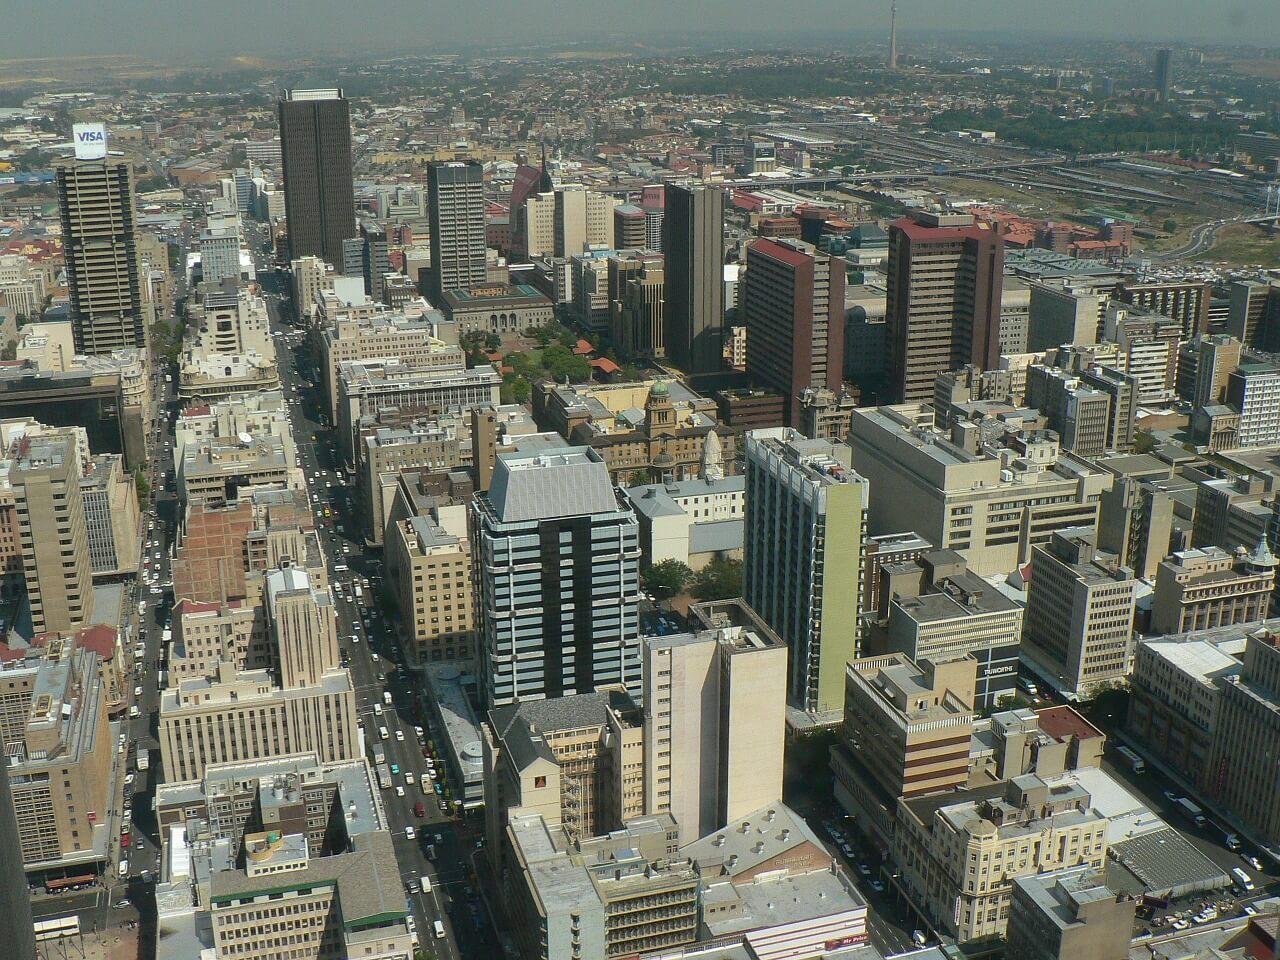 Skyline, Johannesburg, South Africa